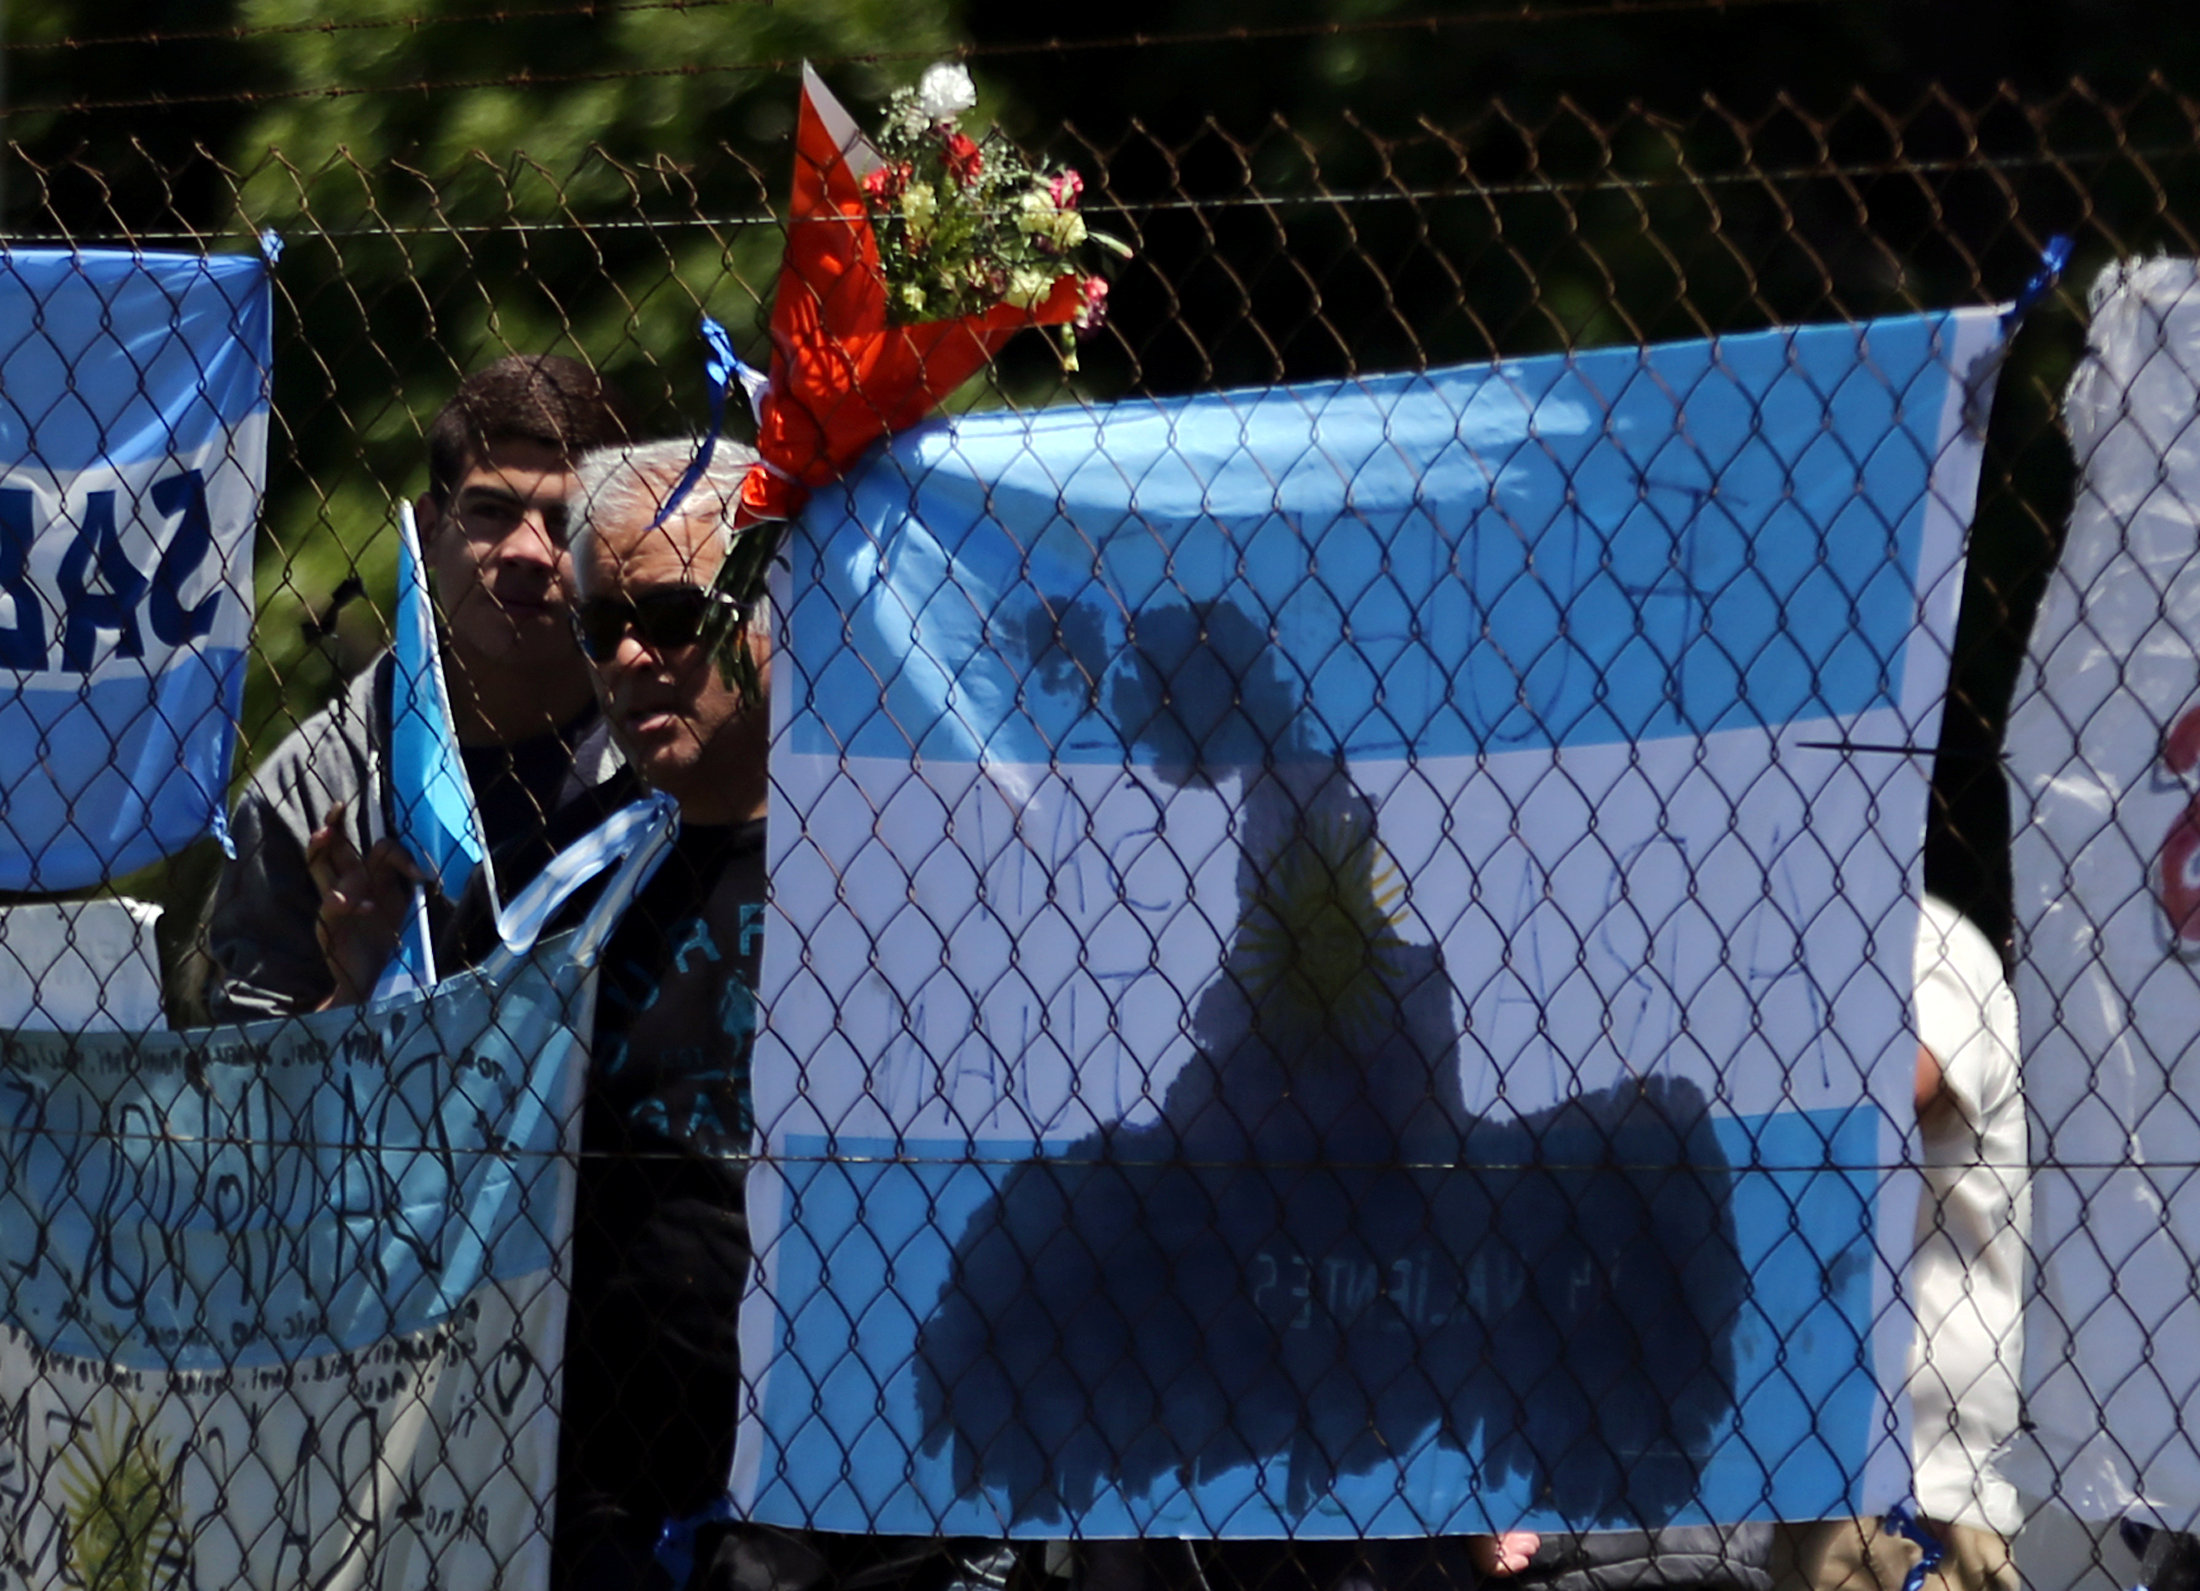 People stand next to a bouquet of flowers and banners in support of the 44 crew members of the missing at sea ARA San Juan submarine, outside an Argentine naval base in Mar del Plata, Argentina November 25, 2017.